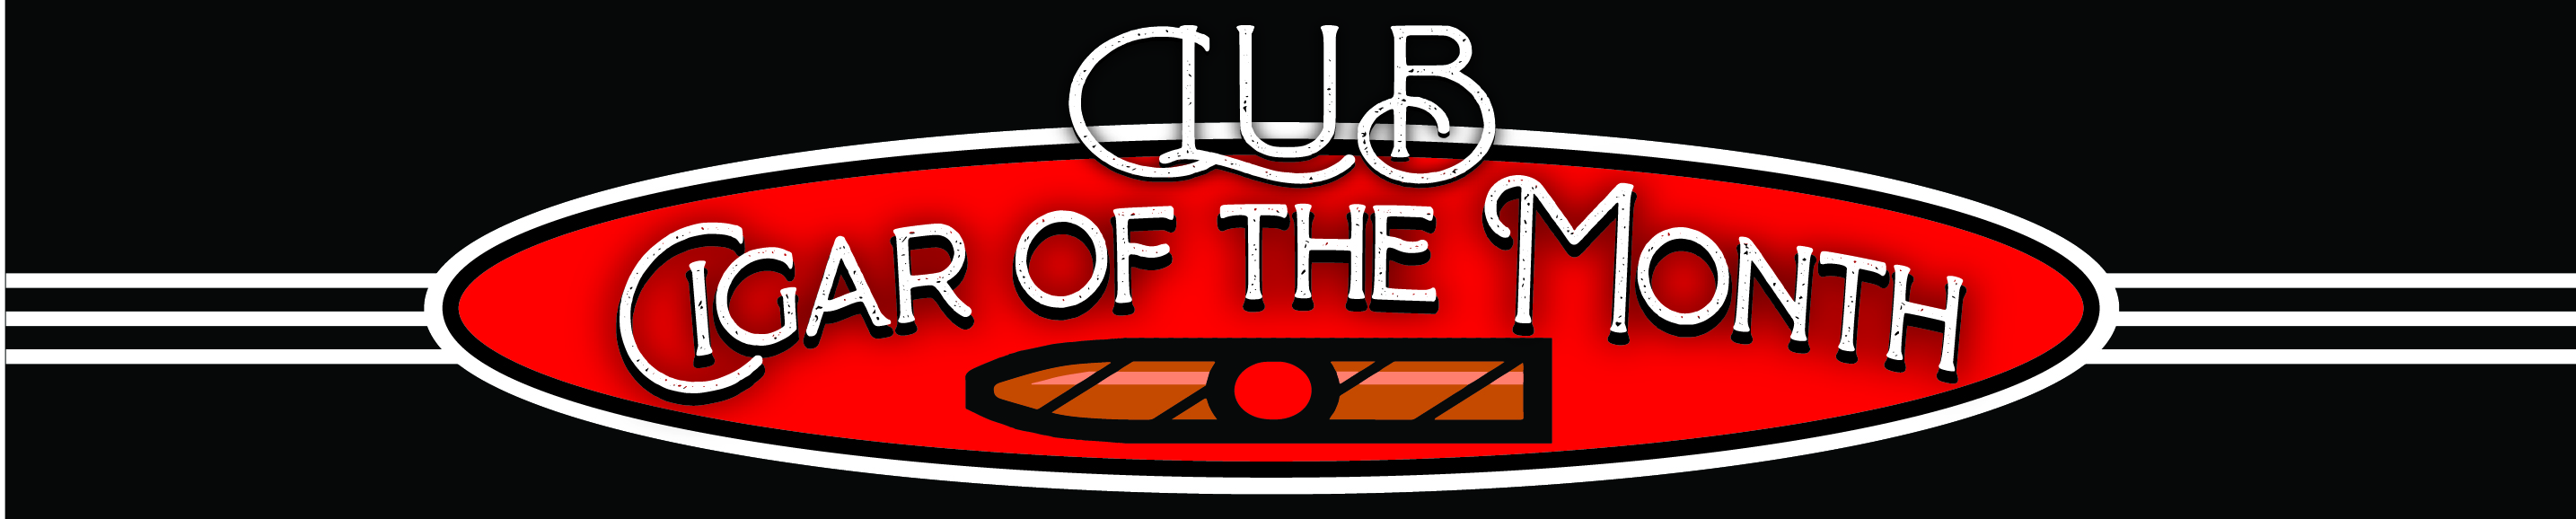 Club Cigar of the Month